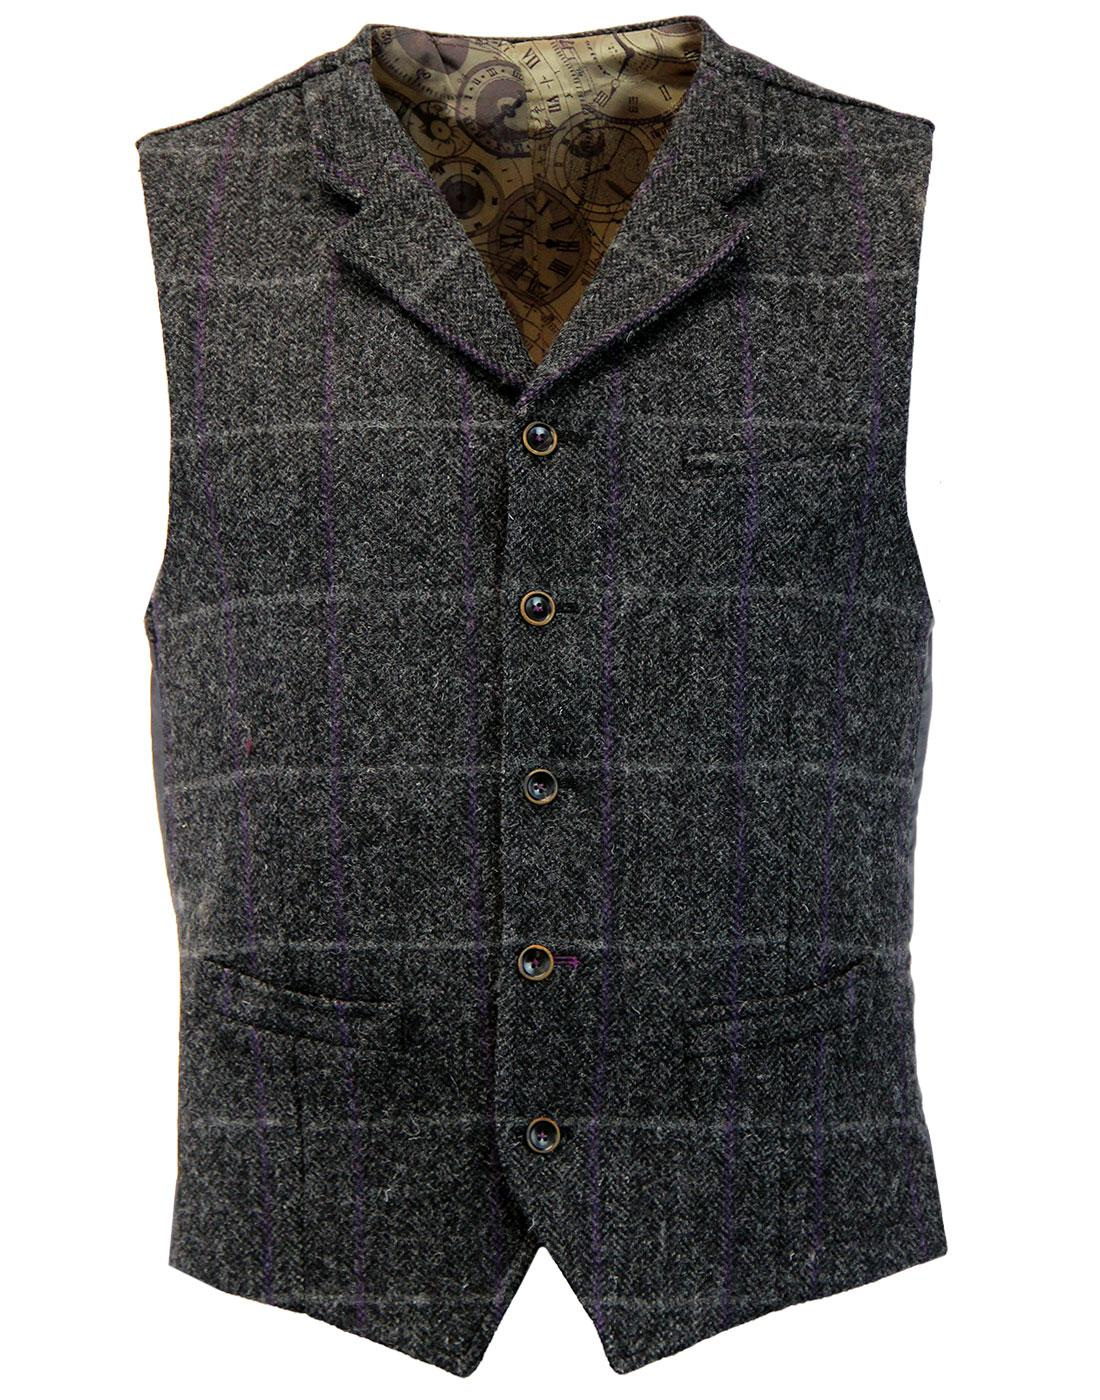 Tyburn GIBSON LONDON Herringbone Check Waistcoat C